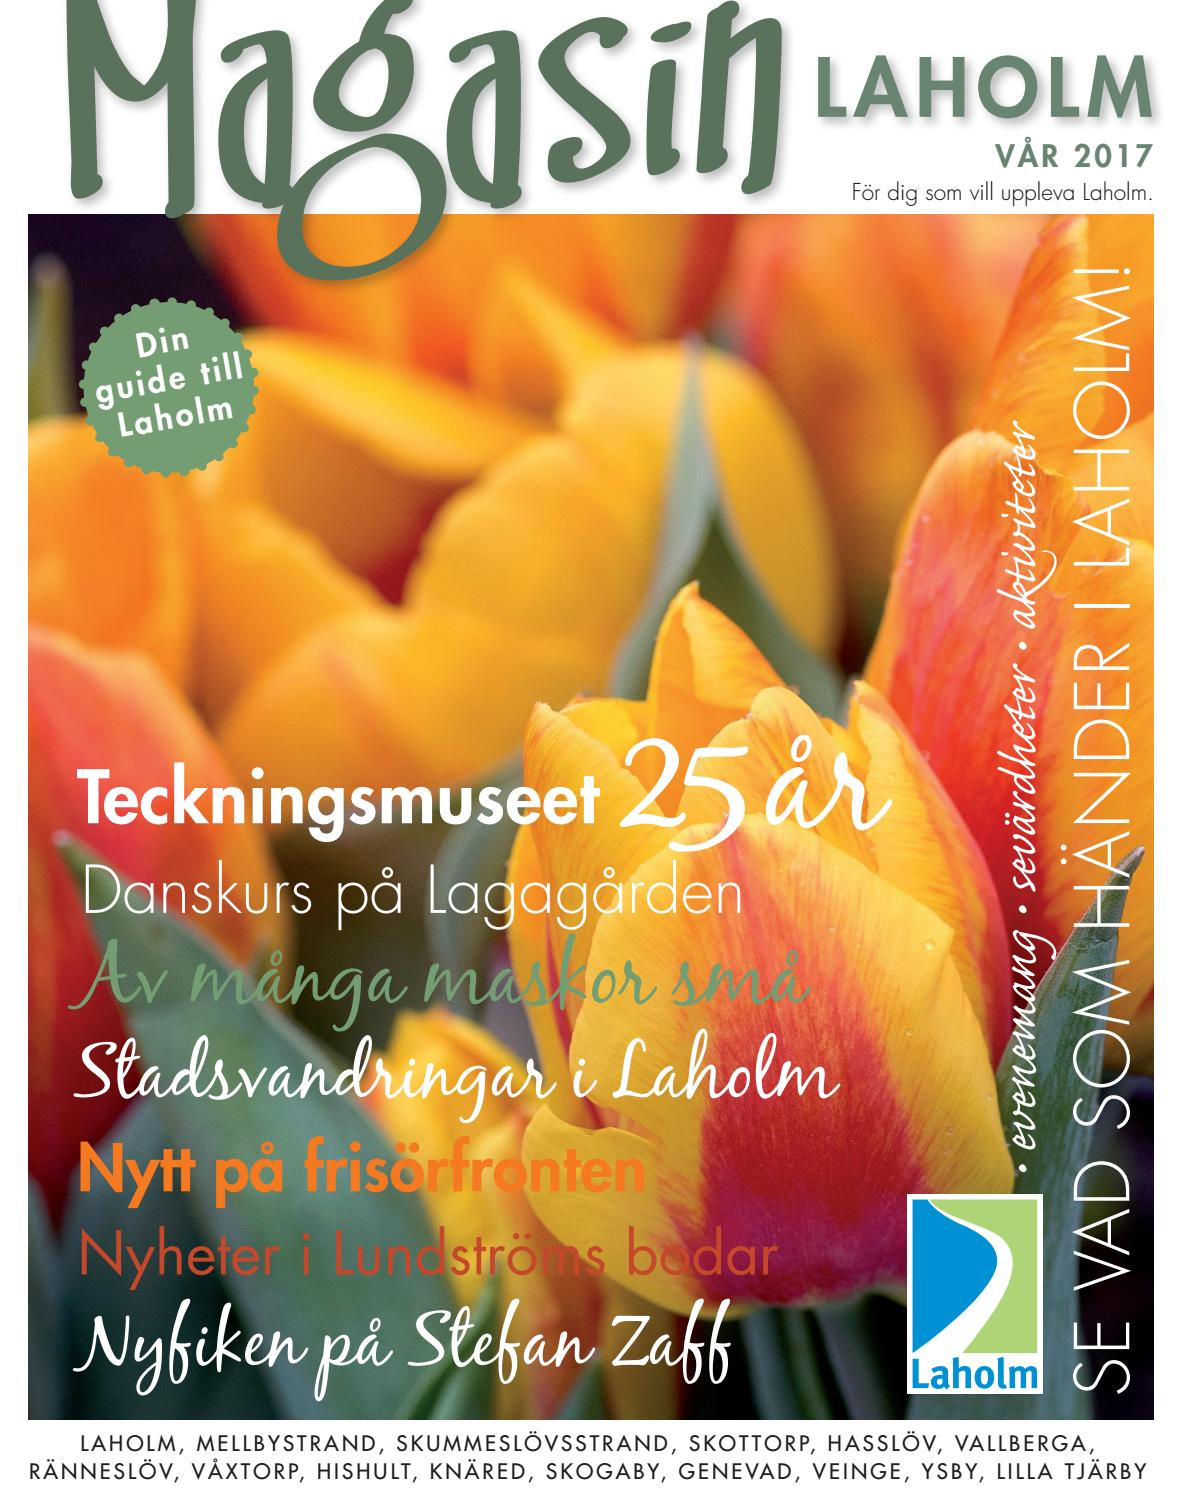 Magasin laholm vr 2017 by MacMedia - issuu